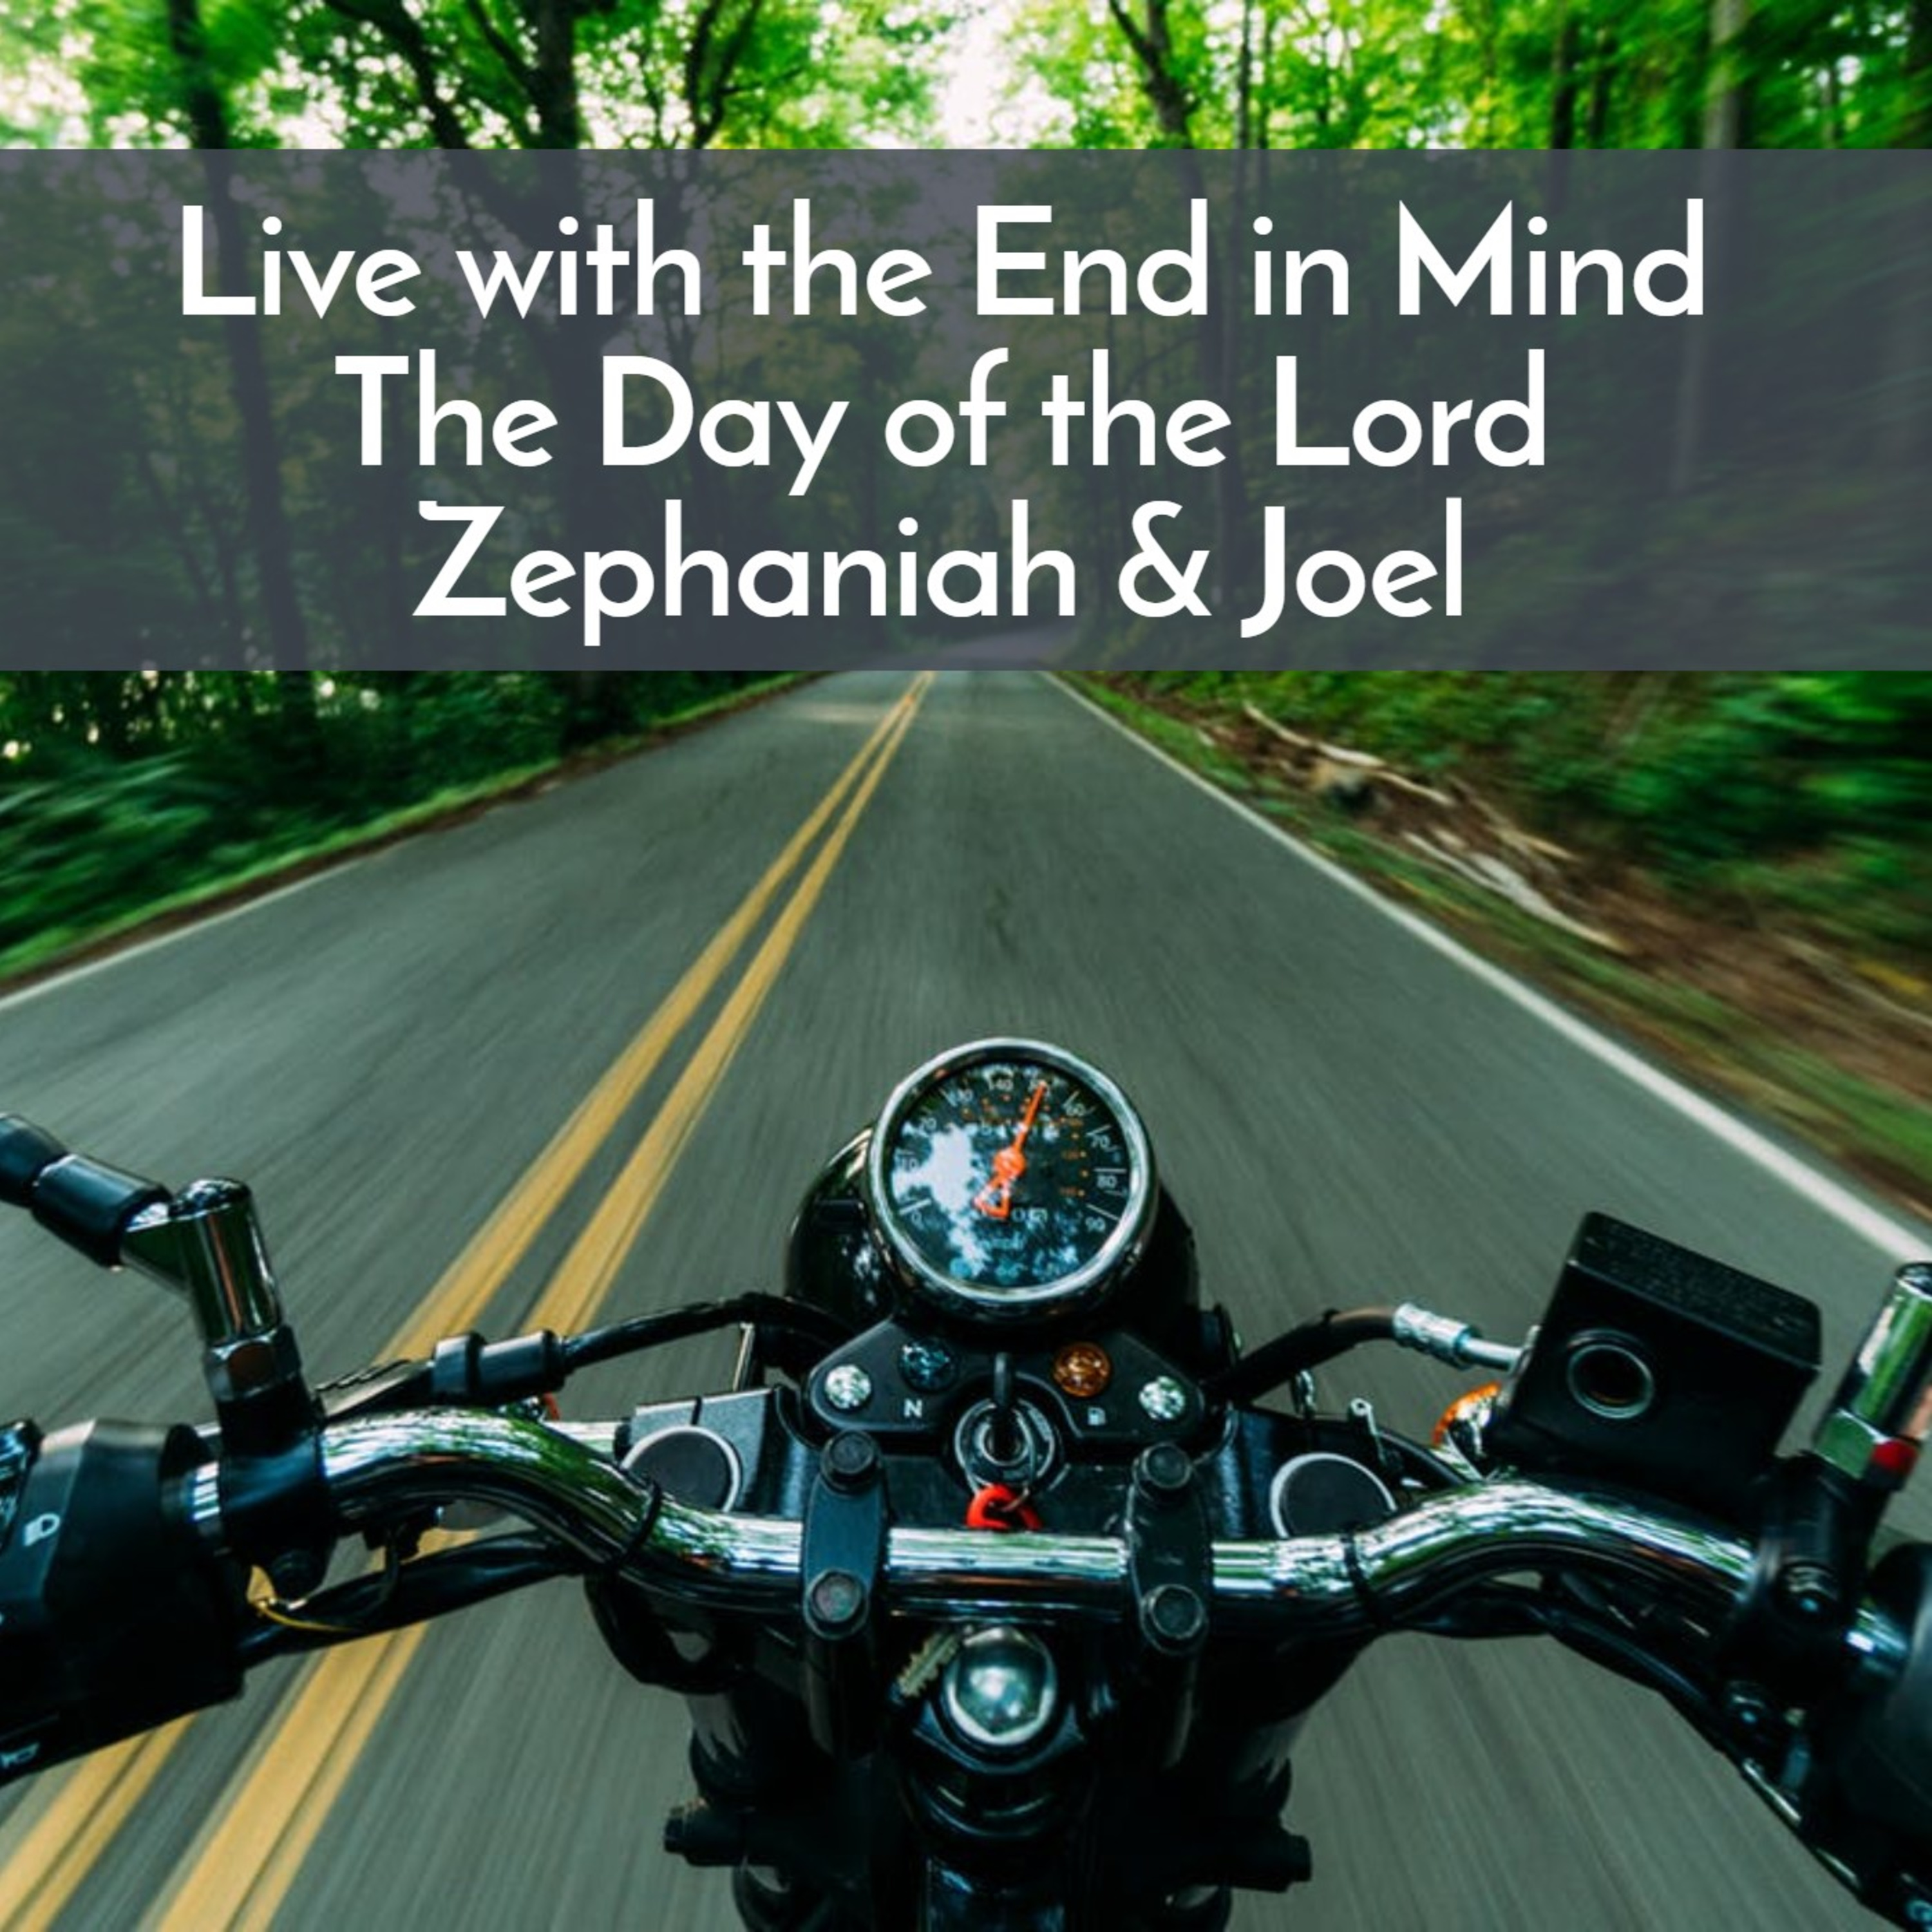 #46 Live with the end in mind, the Day of the Lord as told in Zephaniah and Joel